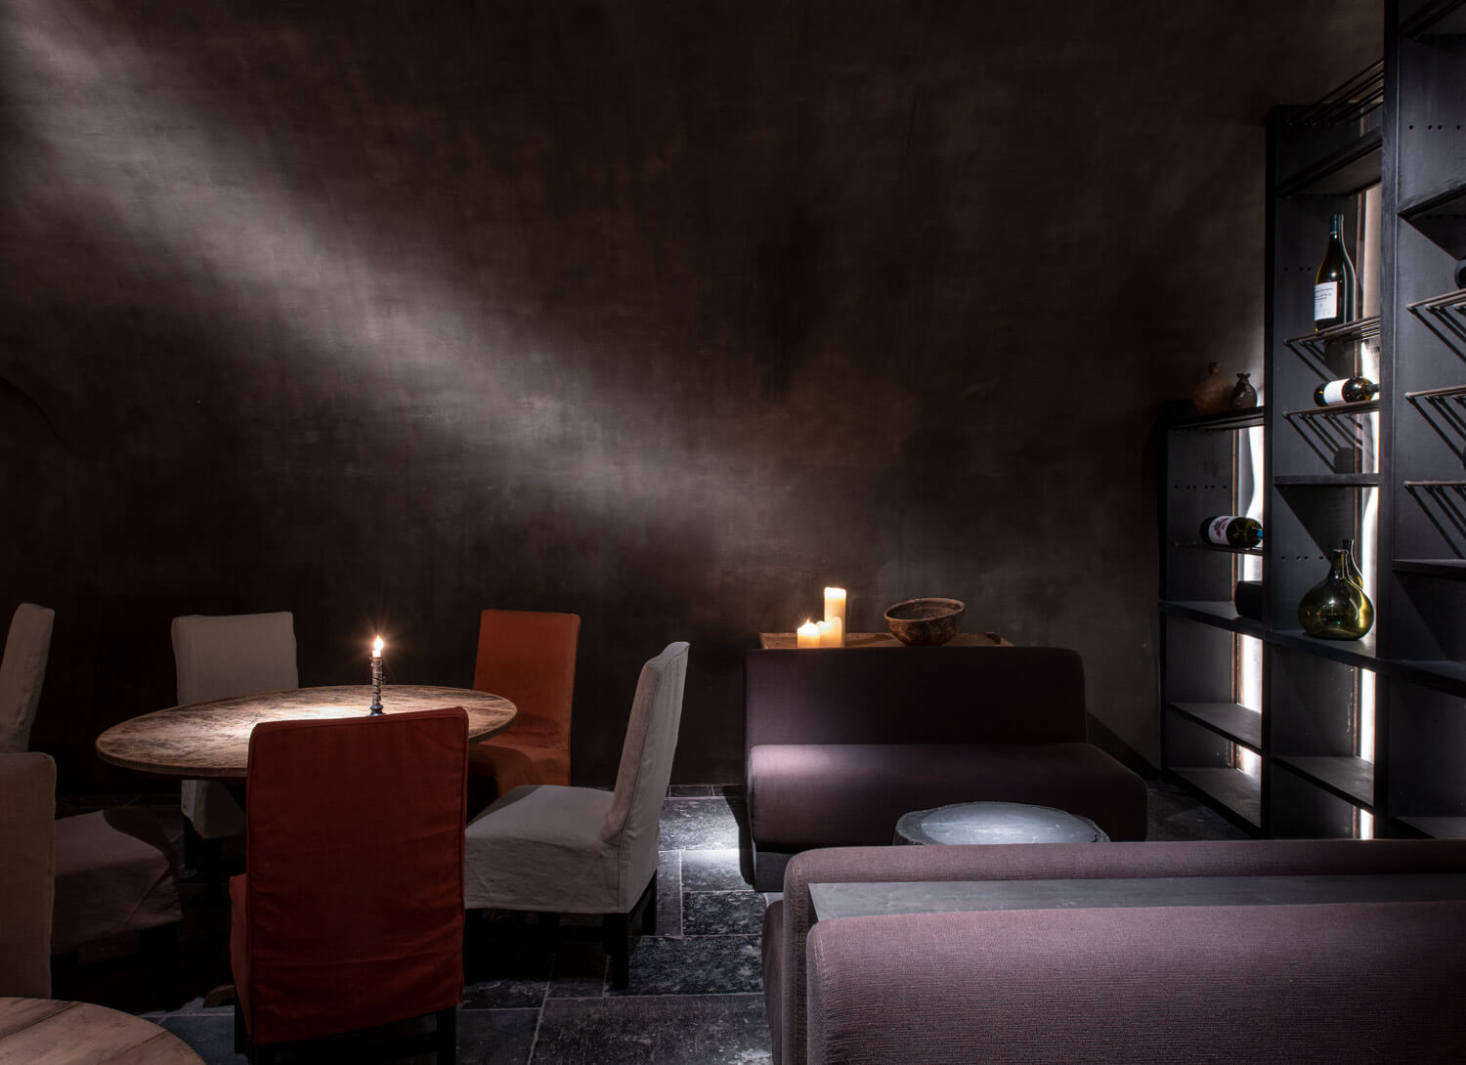 The dining room of the already-Michelin-starred Purs restaurant, presided over by Christian Eckhardt, is appropriately moody and romantic.